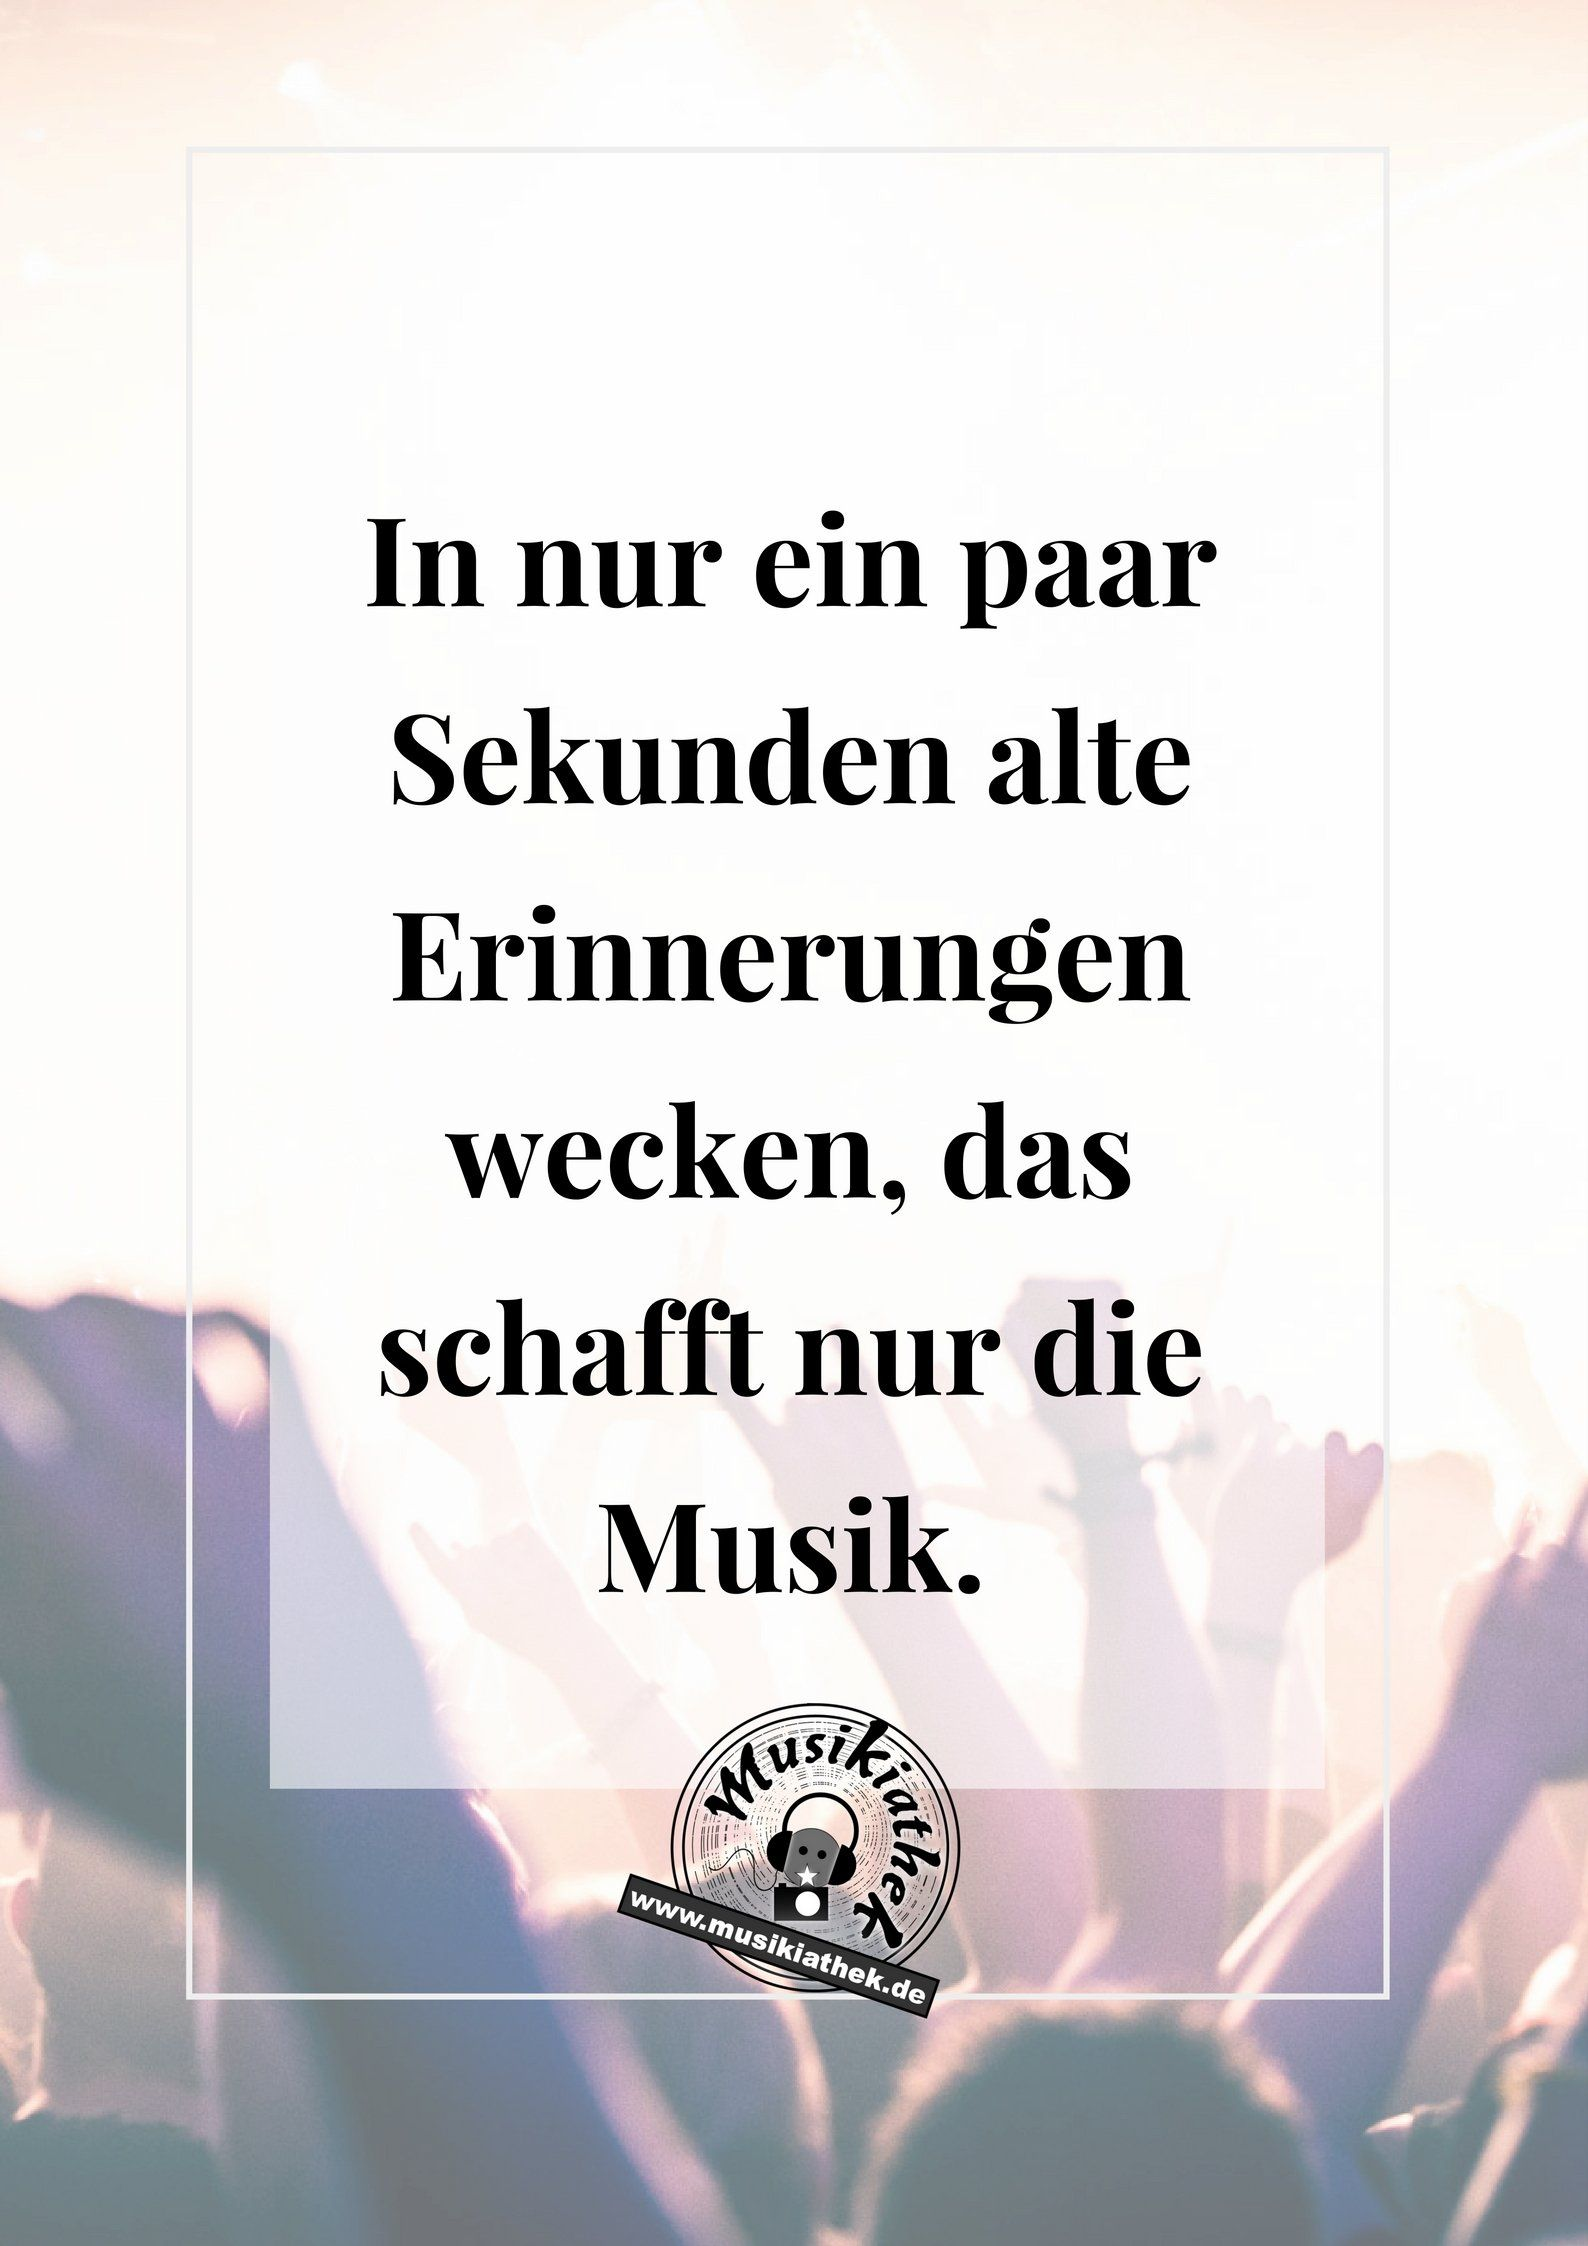 Let The Music Play 6 Spruche Uber Musik Hafft De